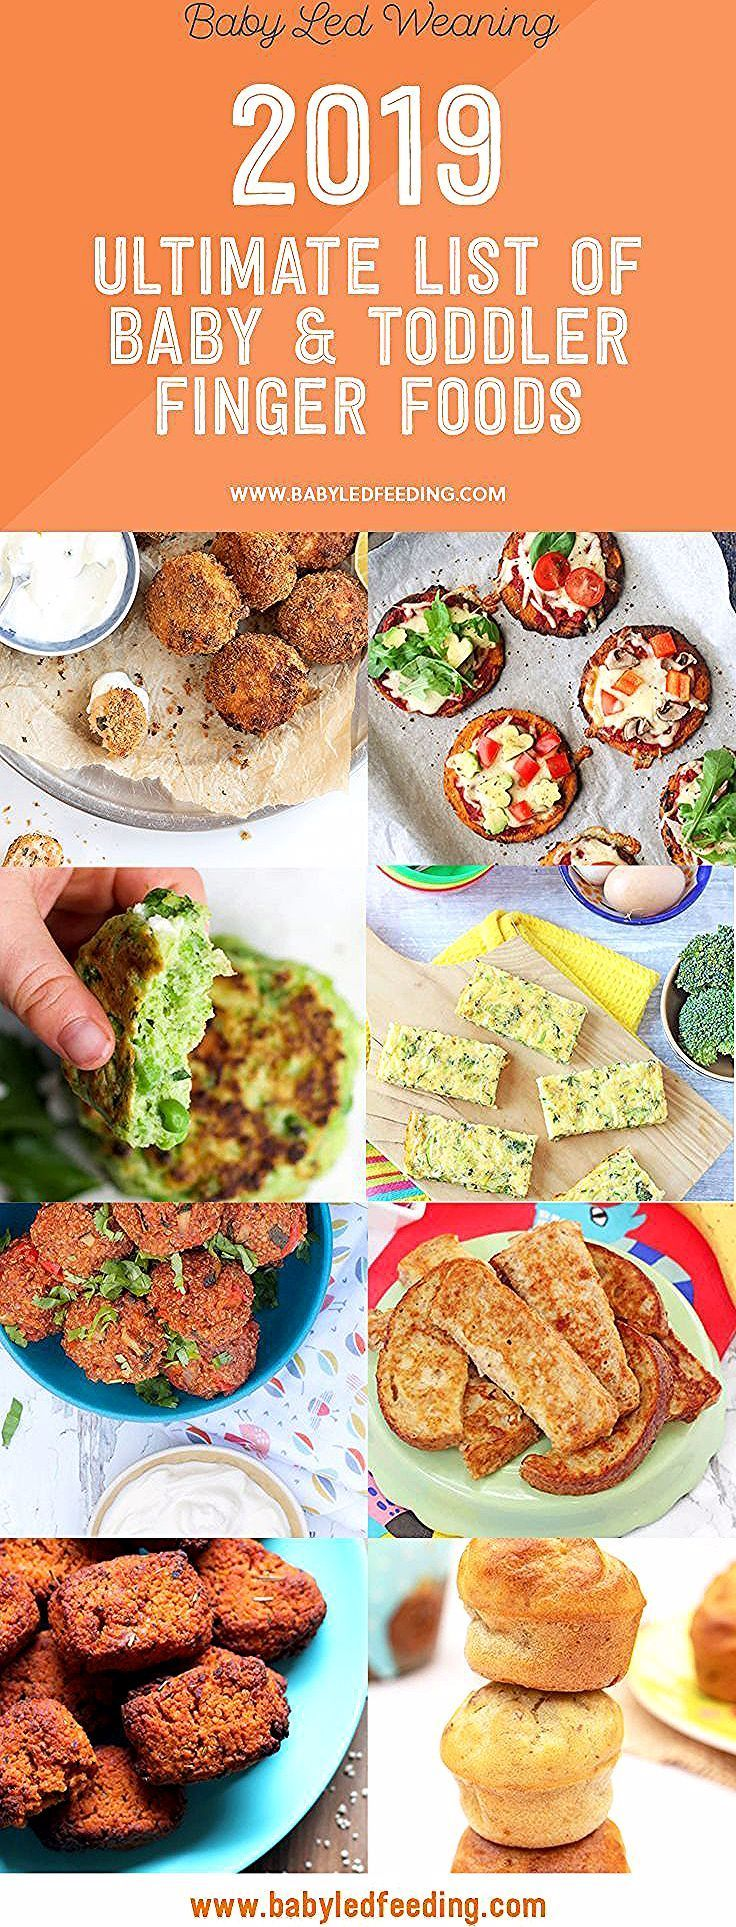 2019s ultimate list of baby and toddler finger foods in